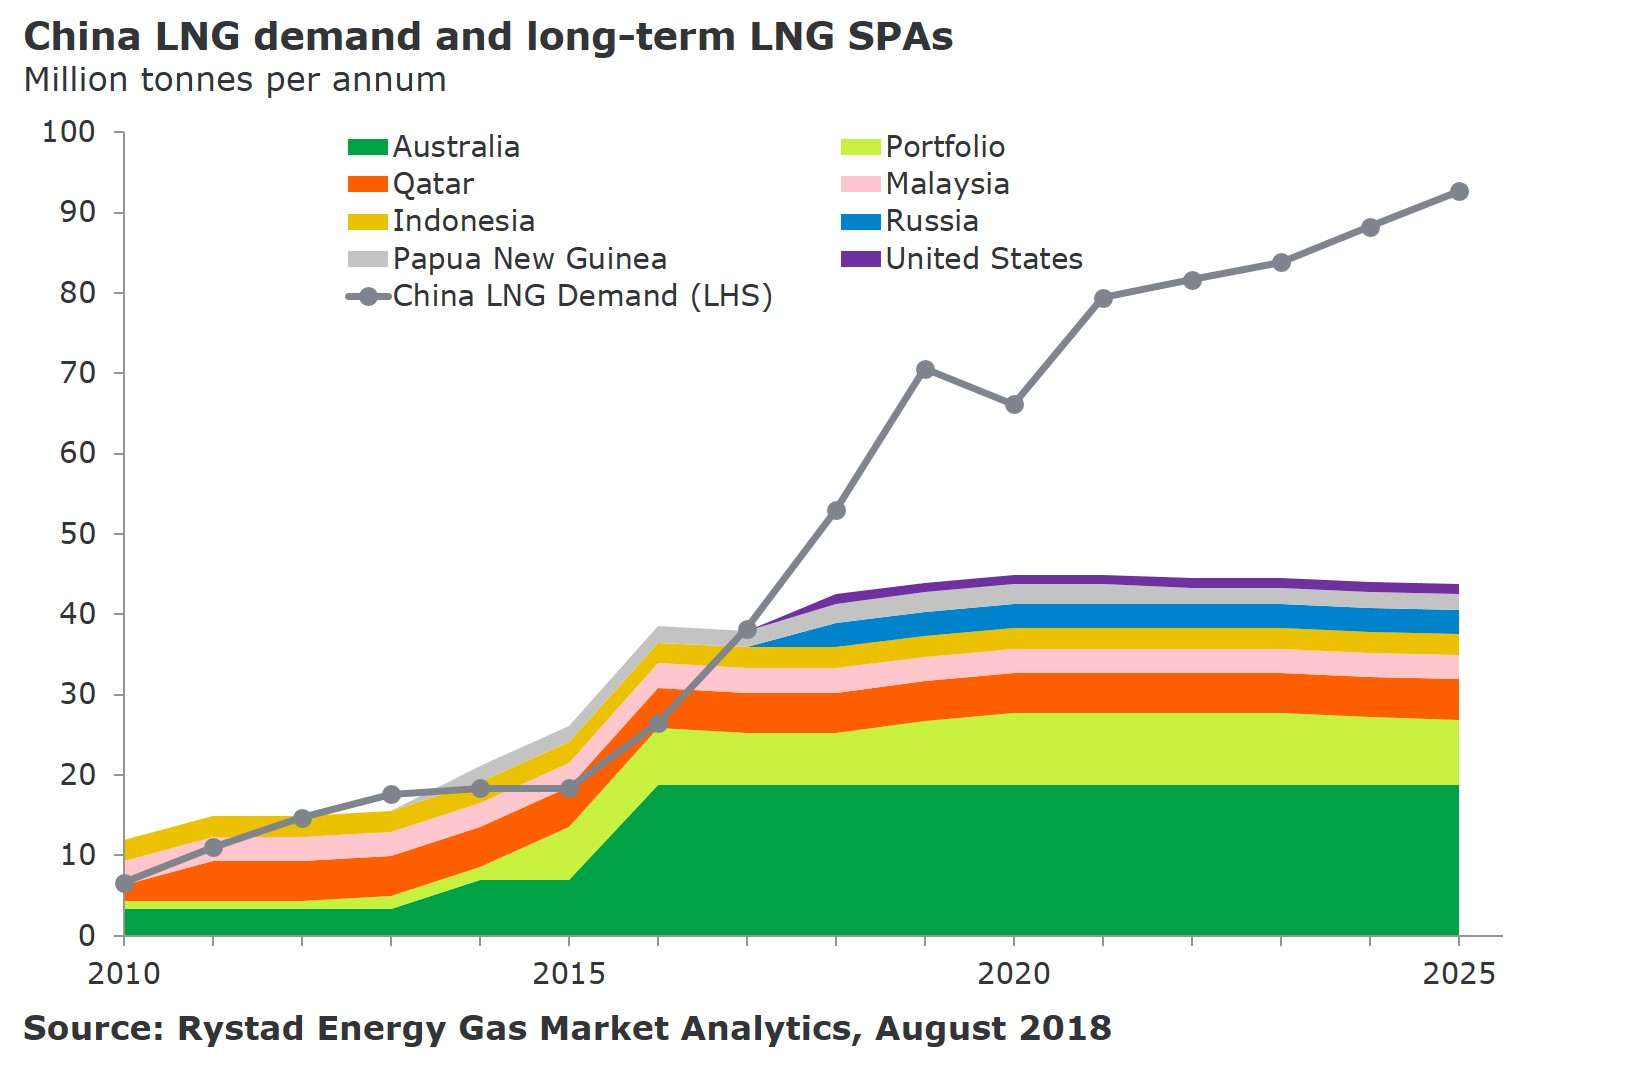 A graph showing China LNG demand and long-term LNG SPAs in Million tonnes per annum from 2010 to 2025 Source: Rystad Energy Gas Market Analytics, August 2018 fr